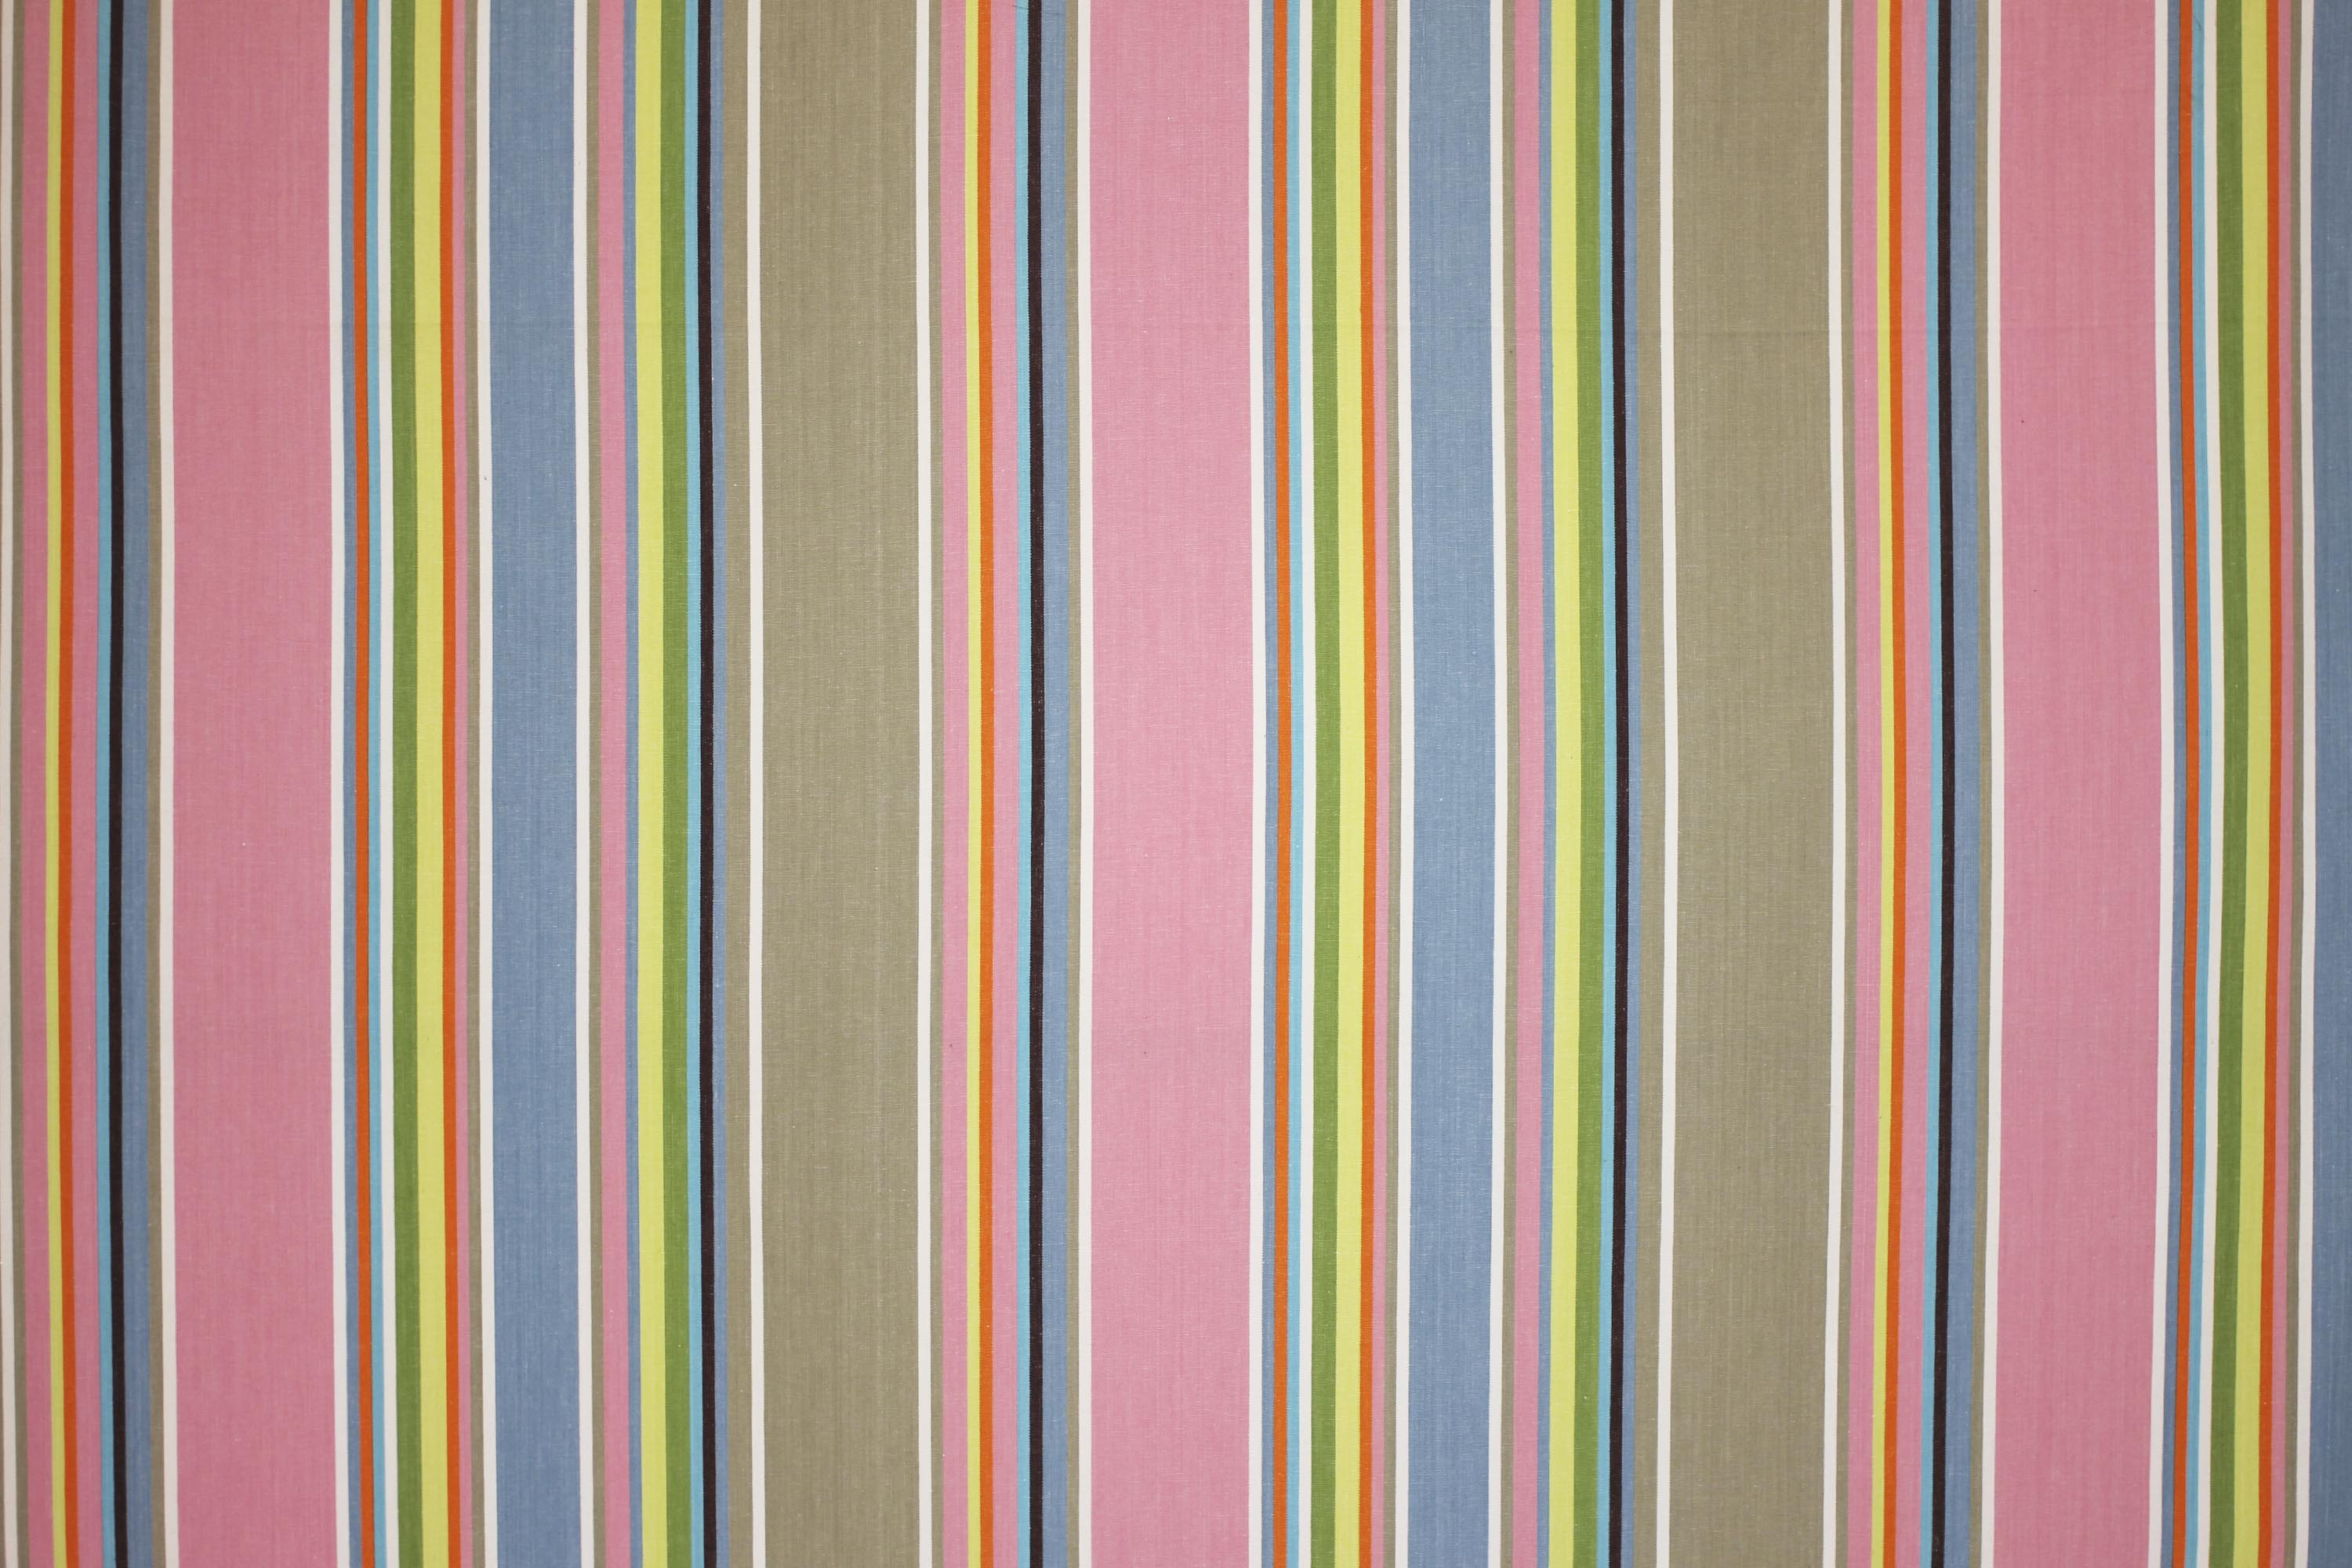 Wipe Clean Fabrics | Water Repellent Fabrics | Striped Coated Fabrics pink, grey, blue